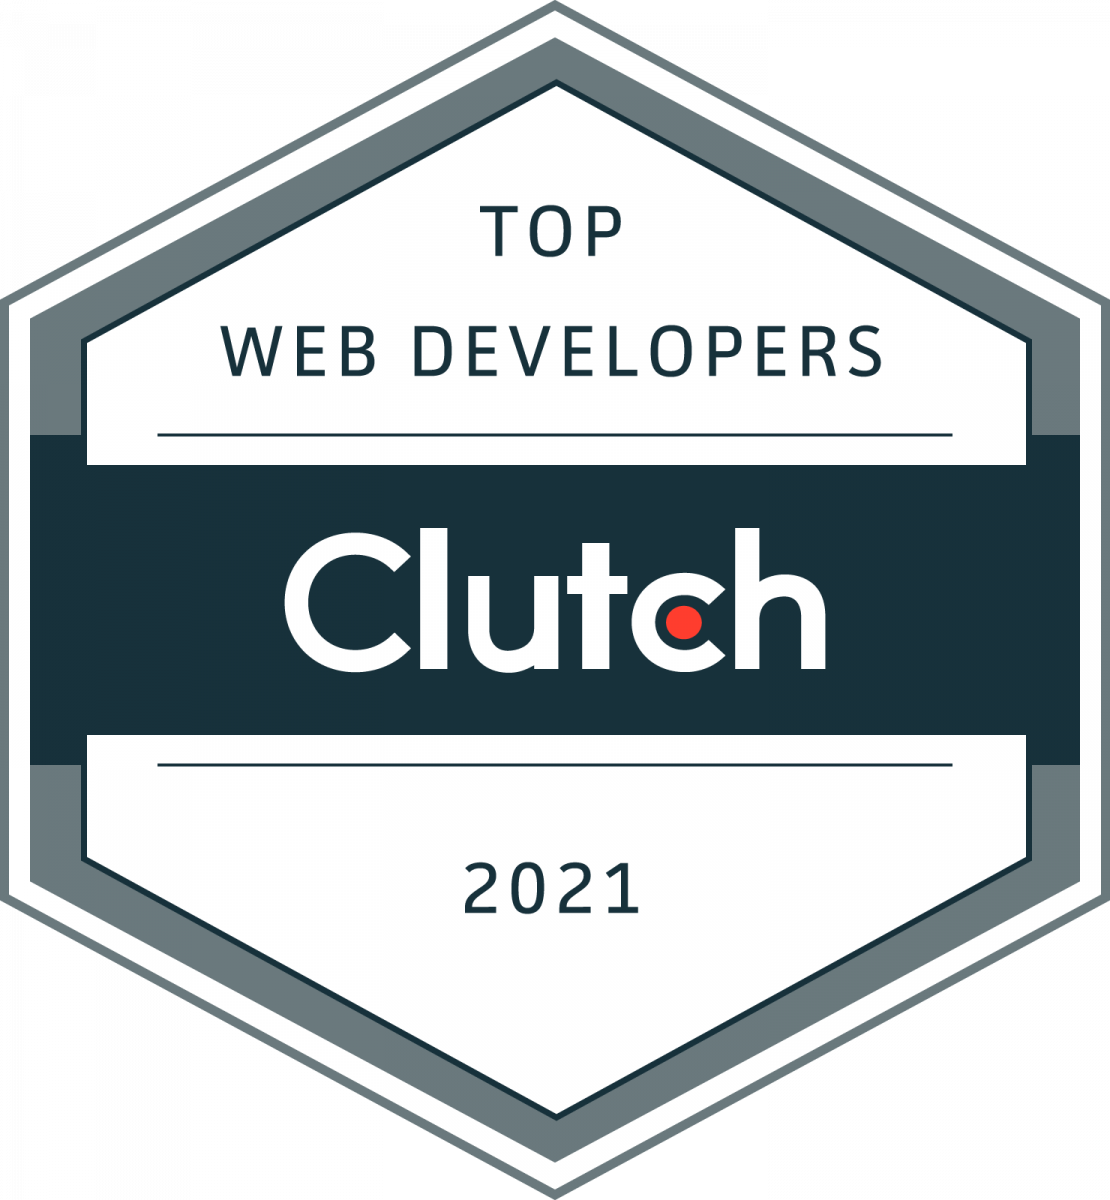 Top Web Developers 2021